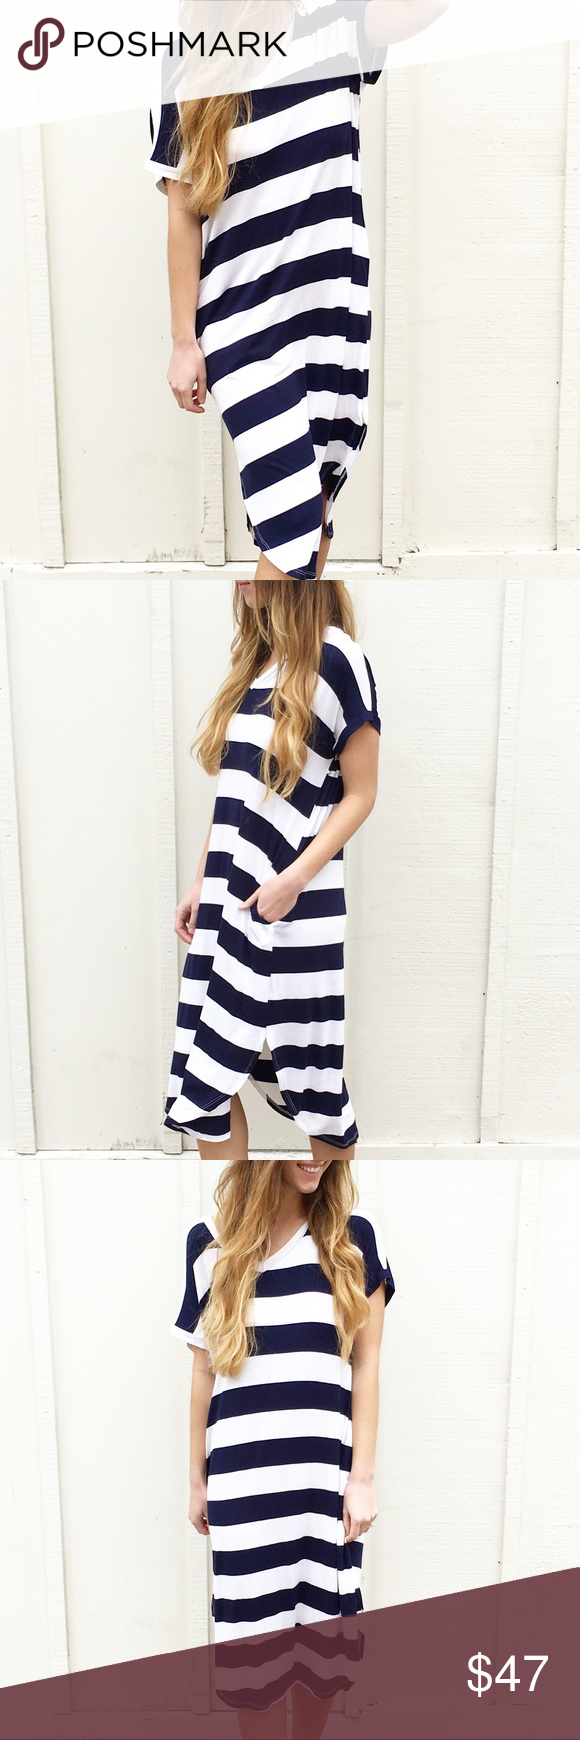 Last item oversized t shirt dress boutique navy stripes navy and